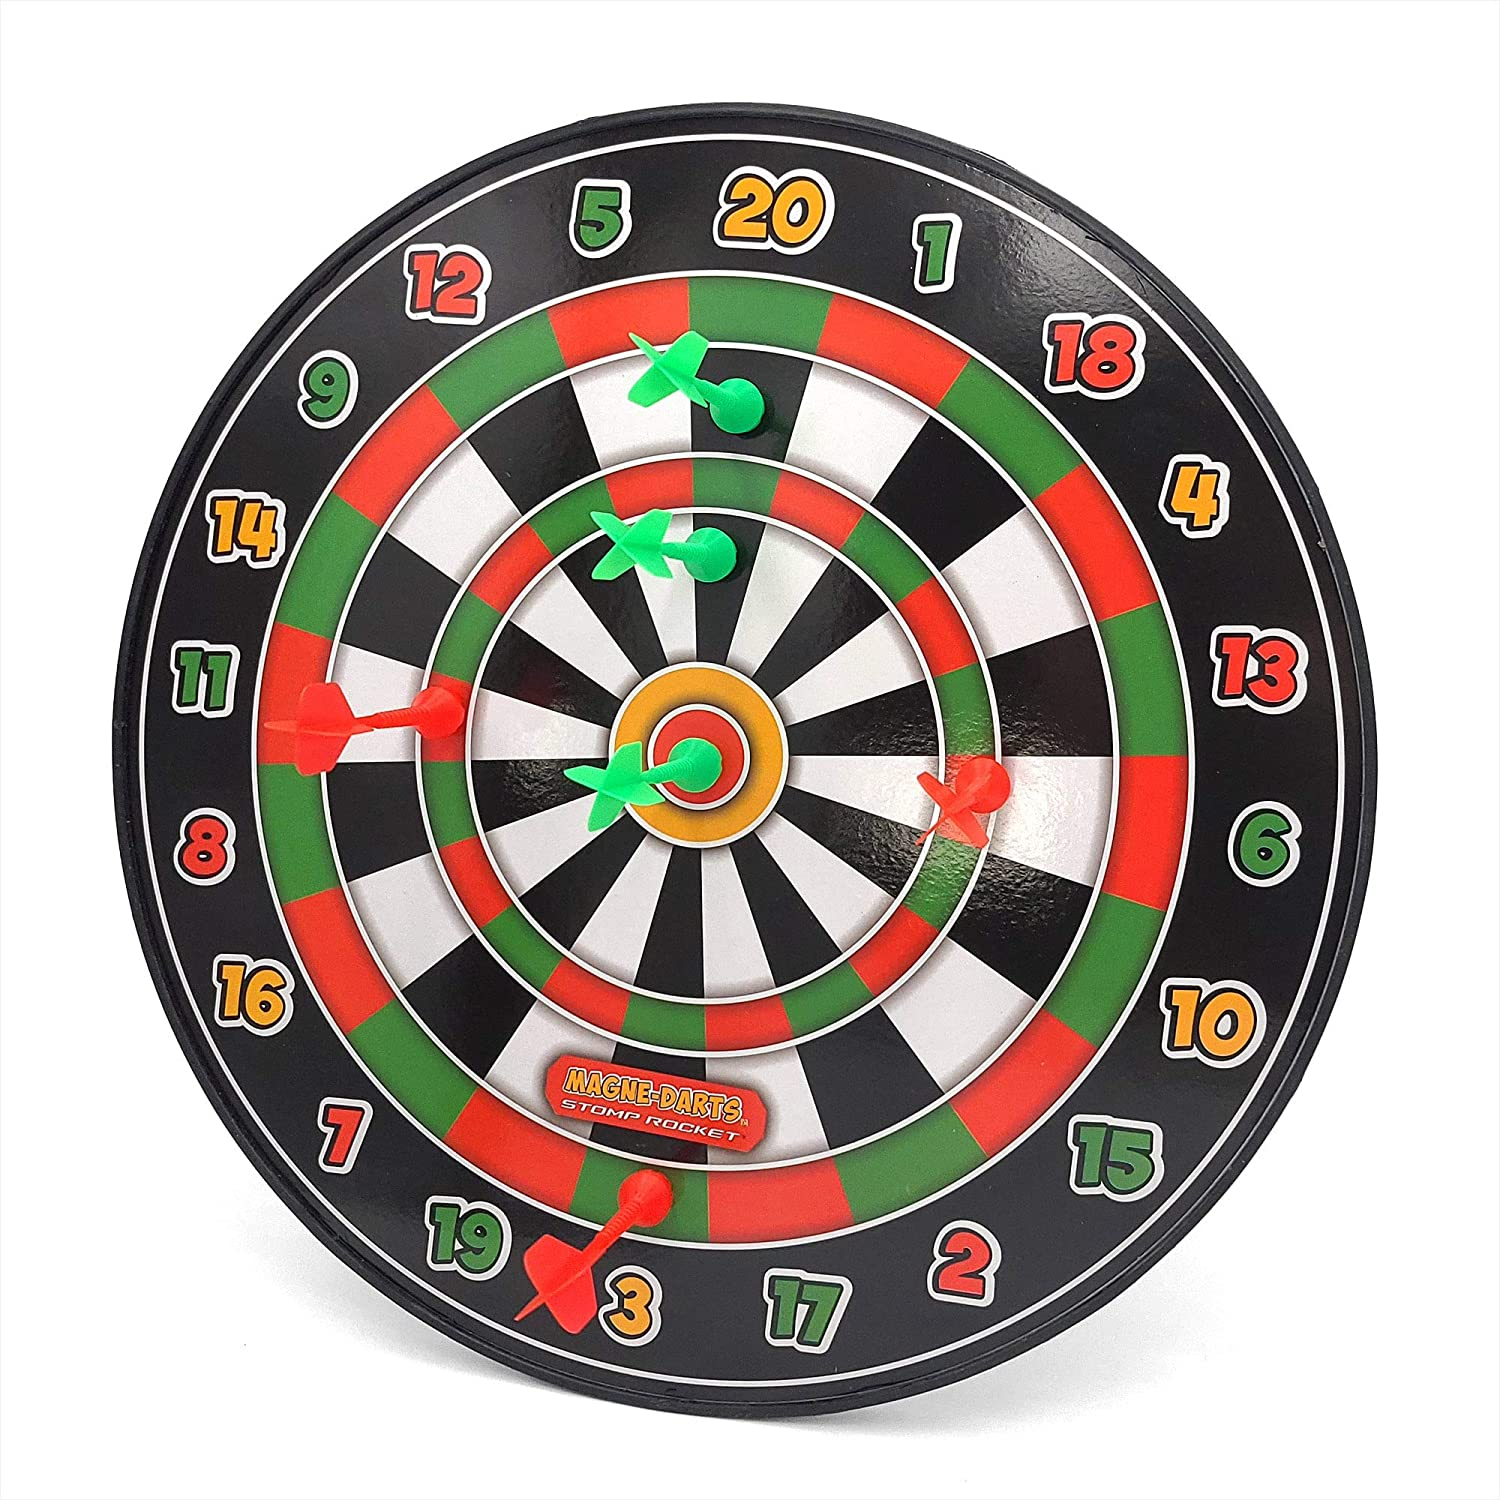 1 Dartboard with 6 Magnetic Darts for Kids Stomp Rocket The Original Magne-Darts Safe Party Games and Toys Great for Outdoor and Indoor Play